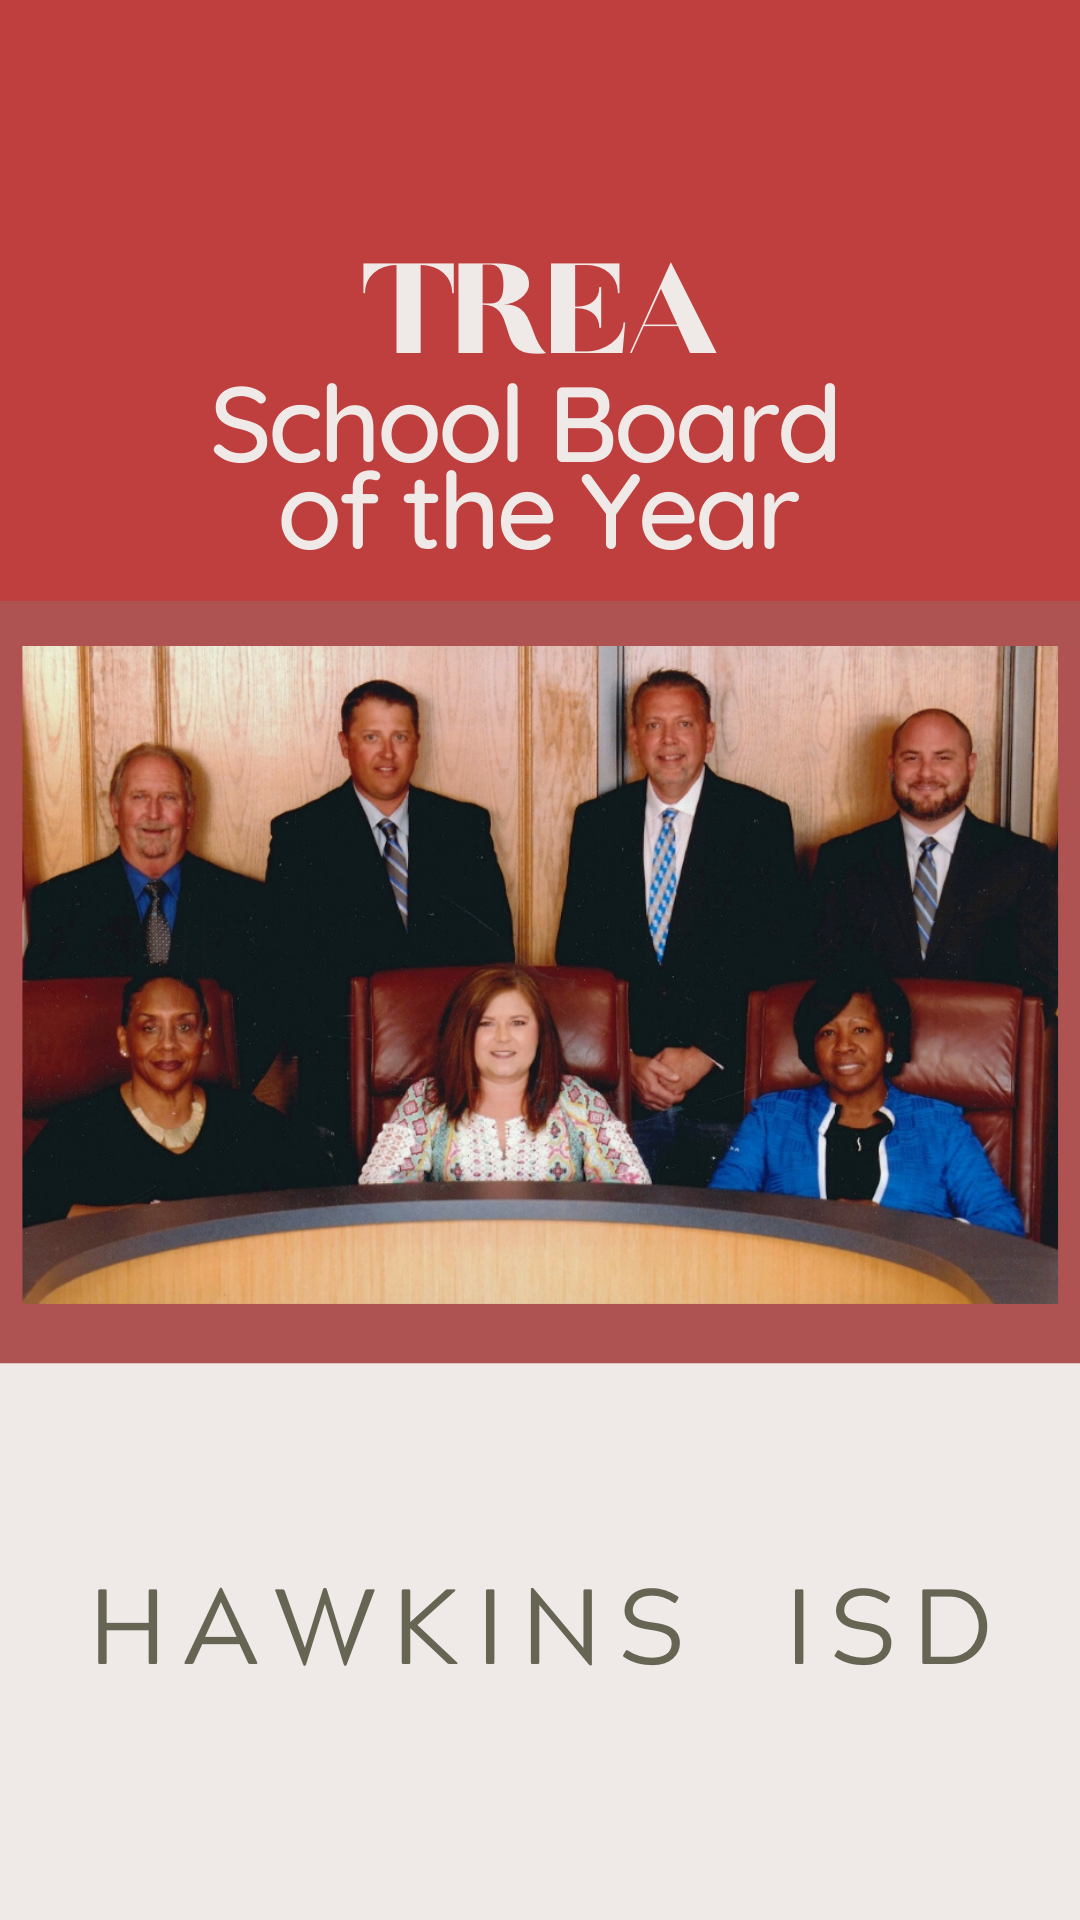 TREA School Board OTY